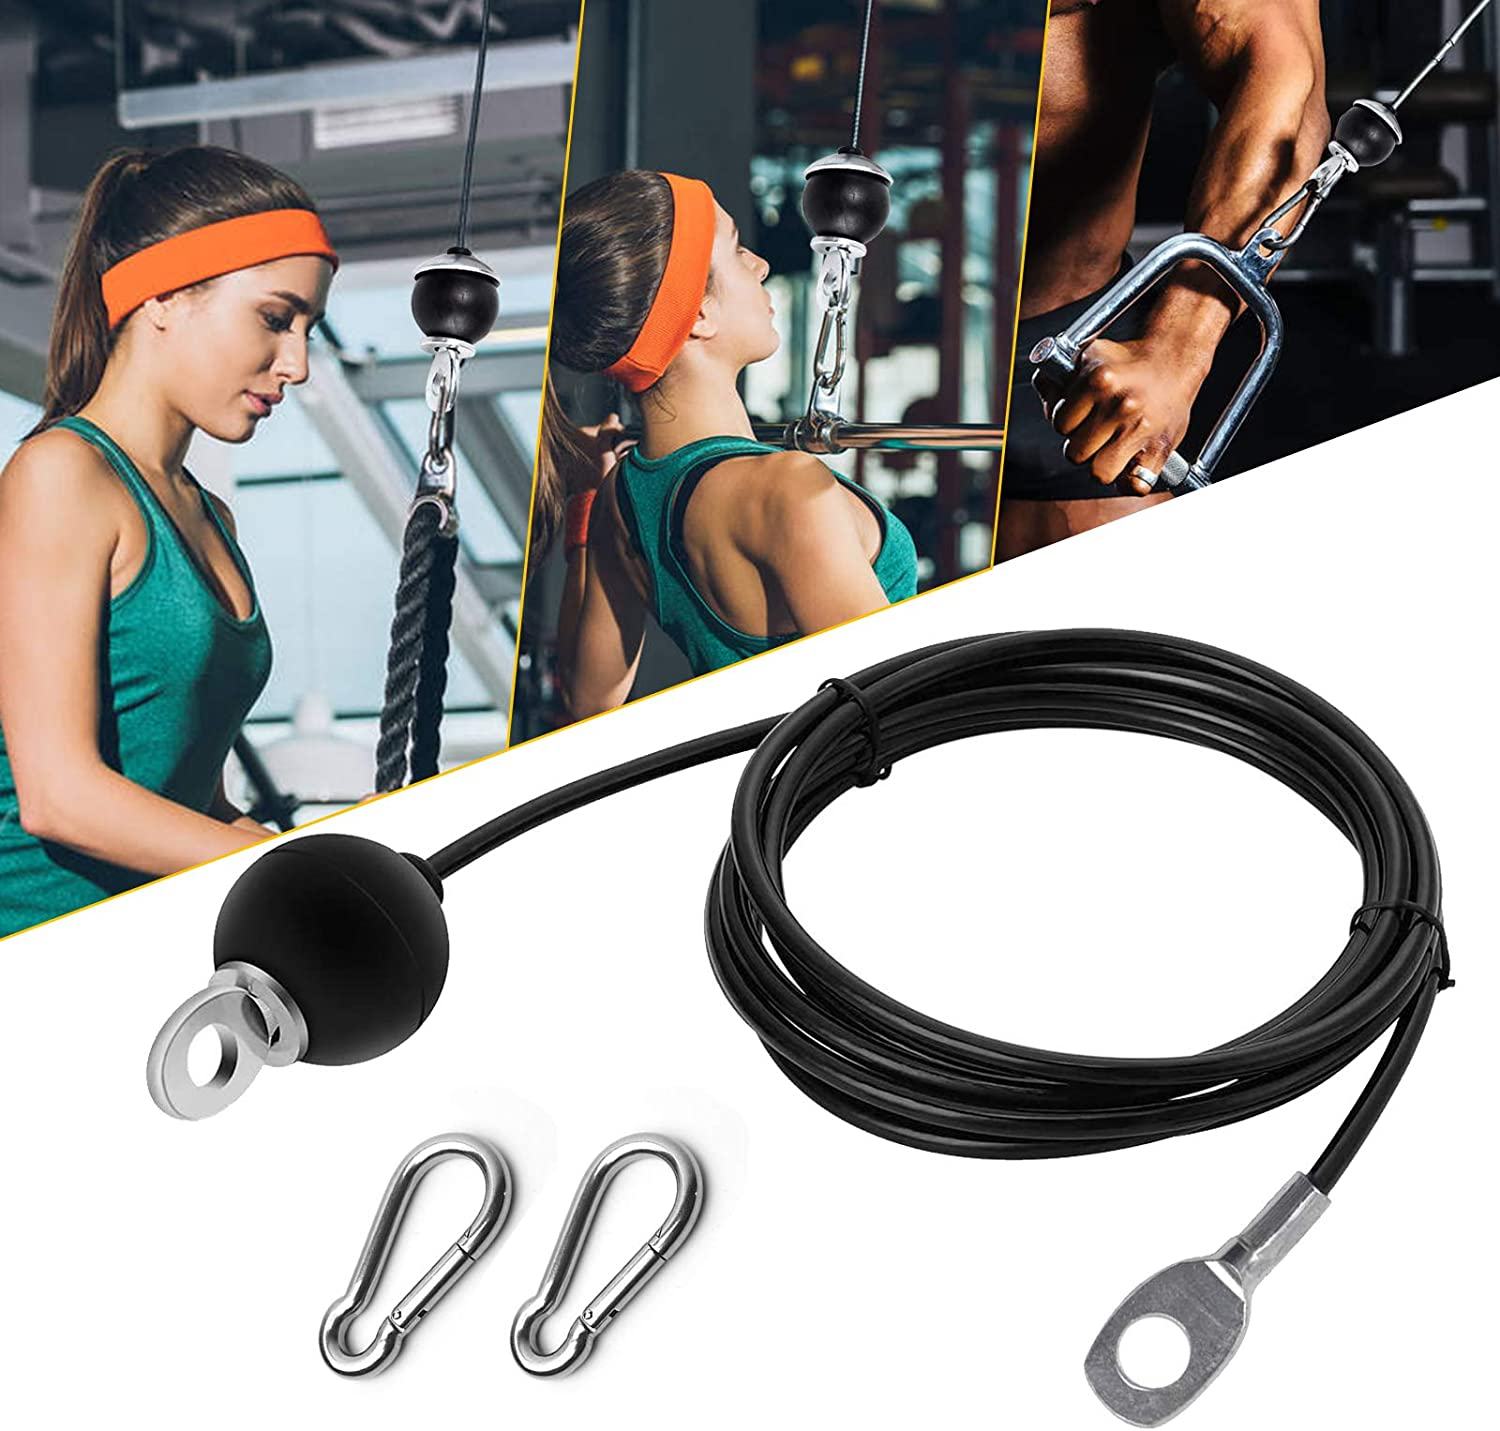 Aoolbic Fitness Replacement Gym Cable for Home Fitness Cable Pulley Machine Accessories,8.2Ft Length Adjustable Heavy Duty Steel Wire Rope,Gym Equipment LAT, Pull Down